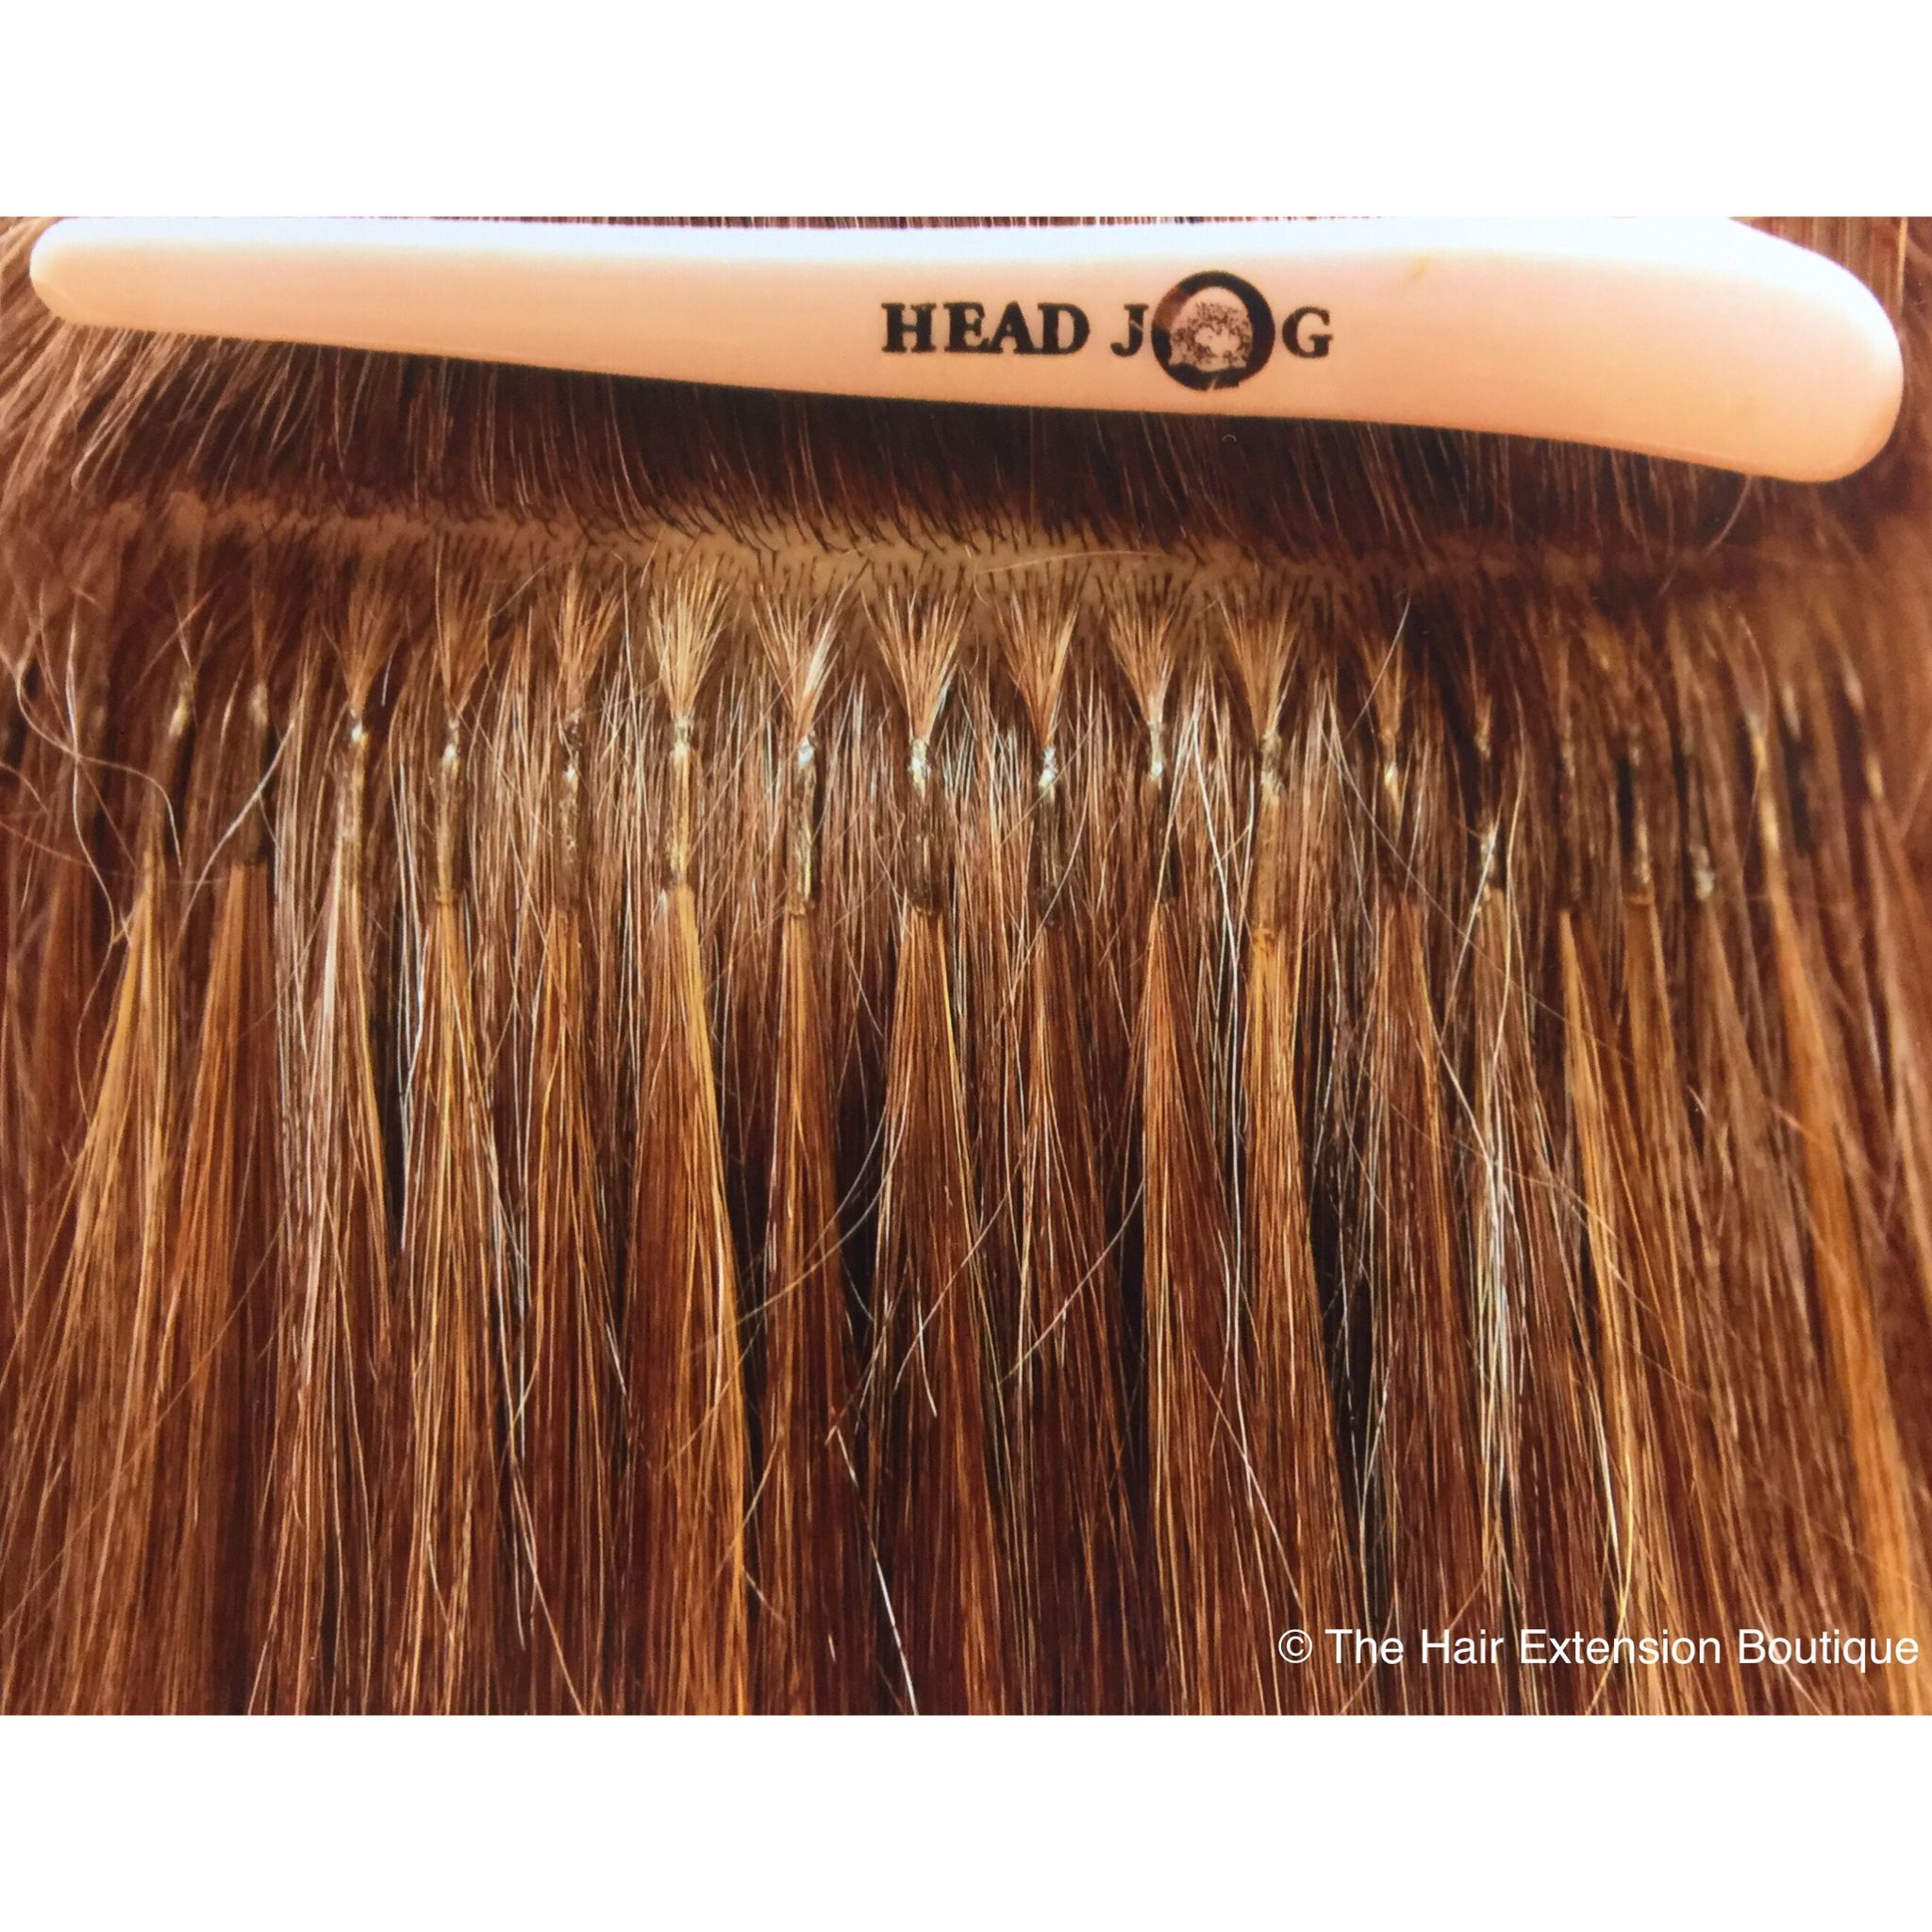 This Is How Micro Bond Hair Extensions Should Look When Applied